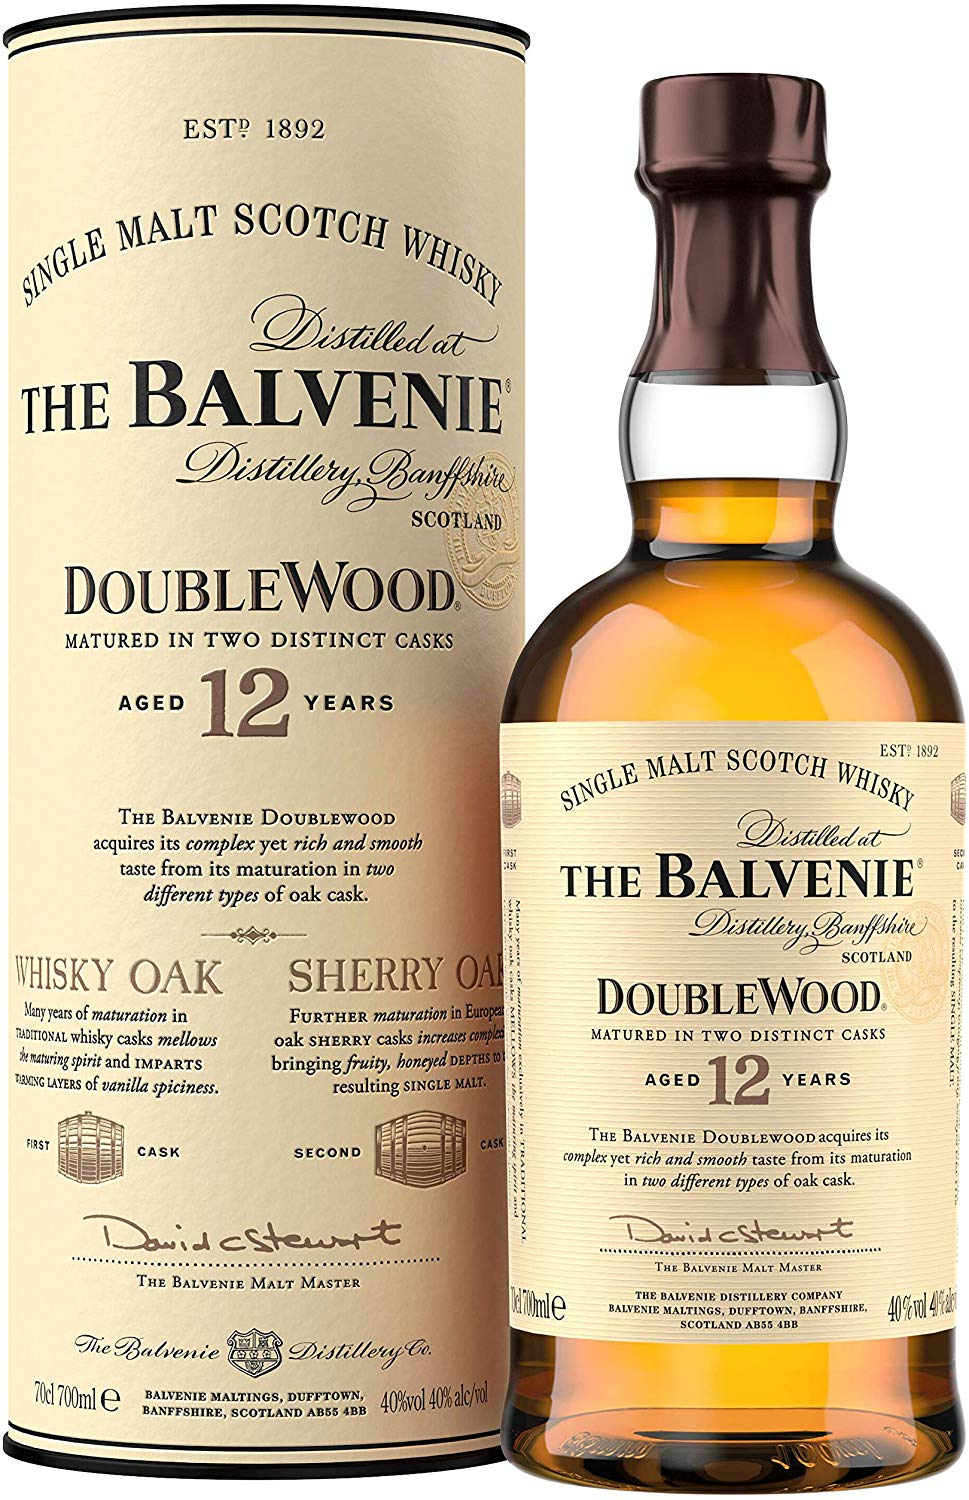 The Balvenie Double Wood 12 Year Old Single Malt Scotch Whisky 70 cl for £34.95  on Amazon